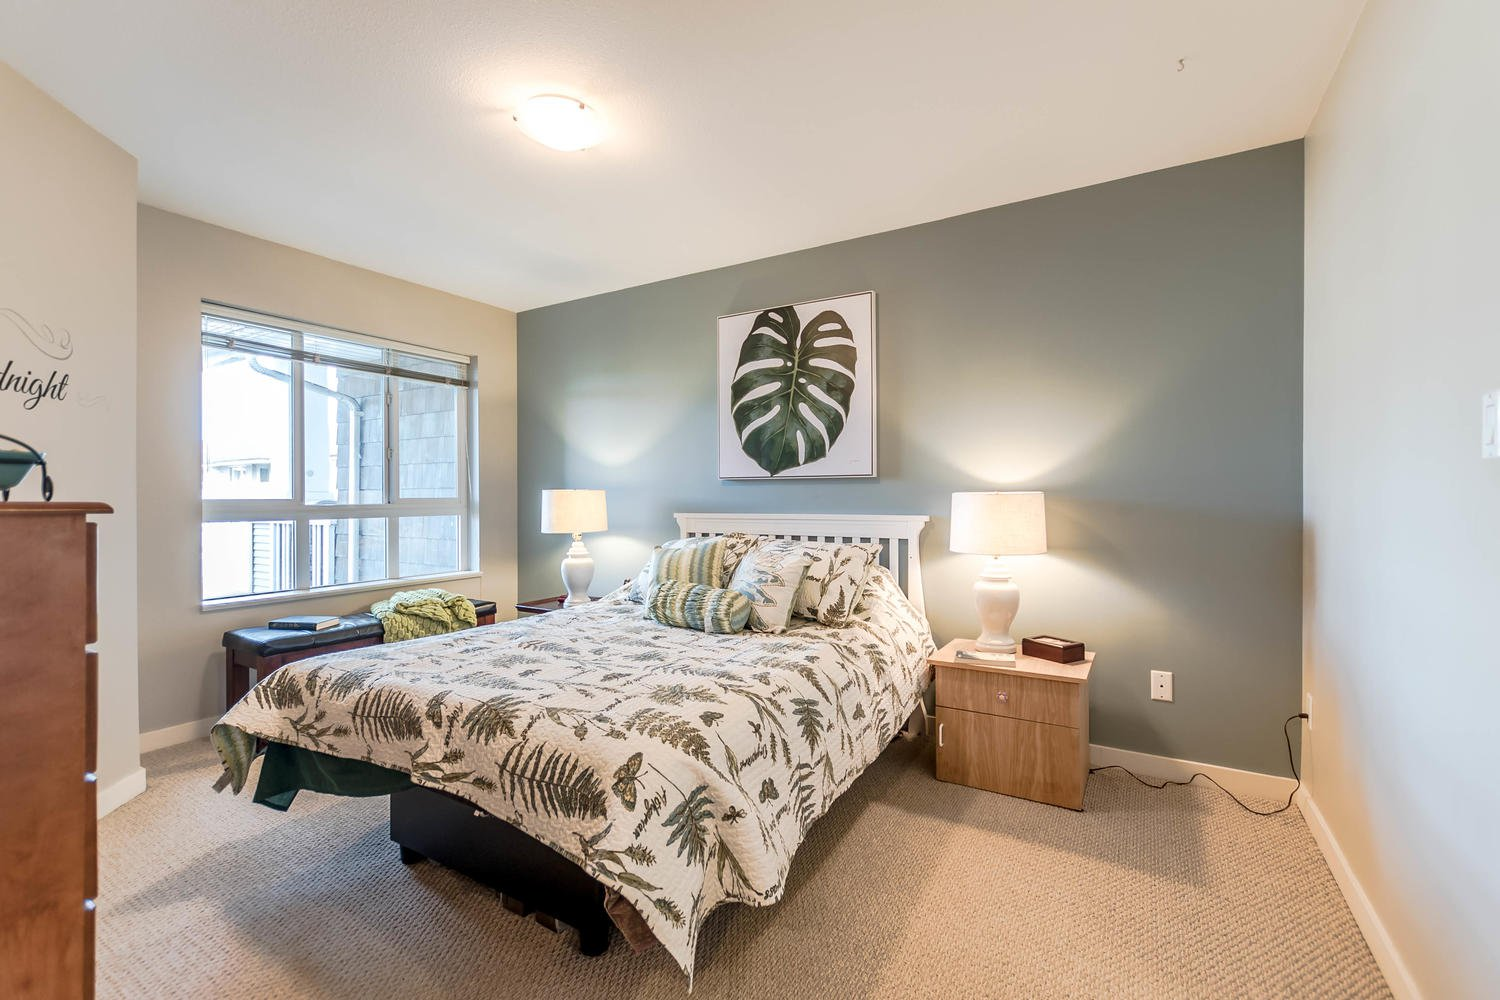 Photo 14: Photos: #408 20750 Duncan Way: Langley City Condo for sale (Langley)  : MLS®# R2221641